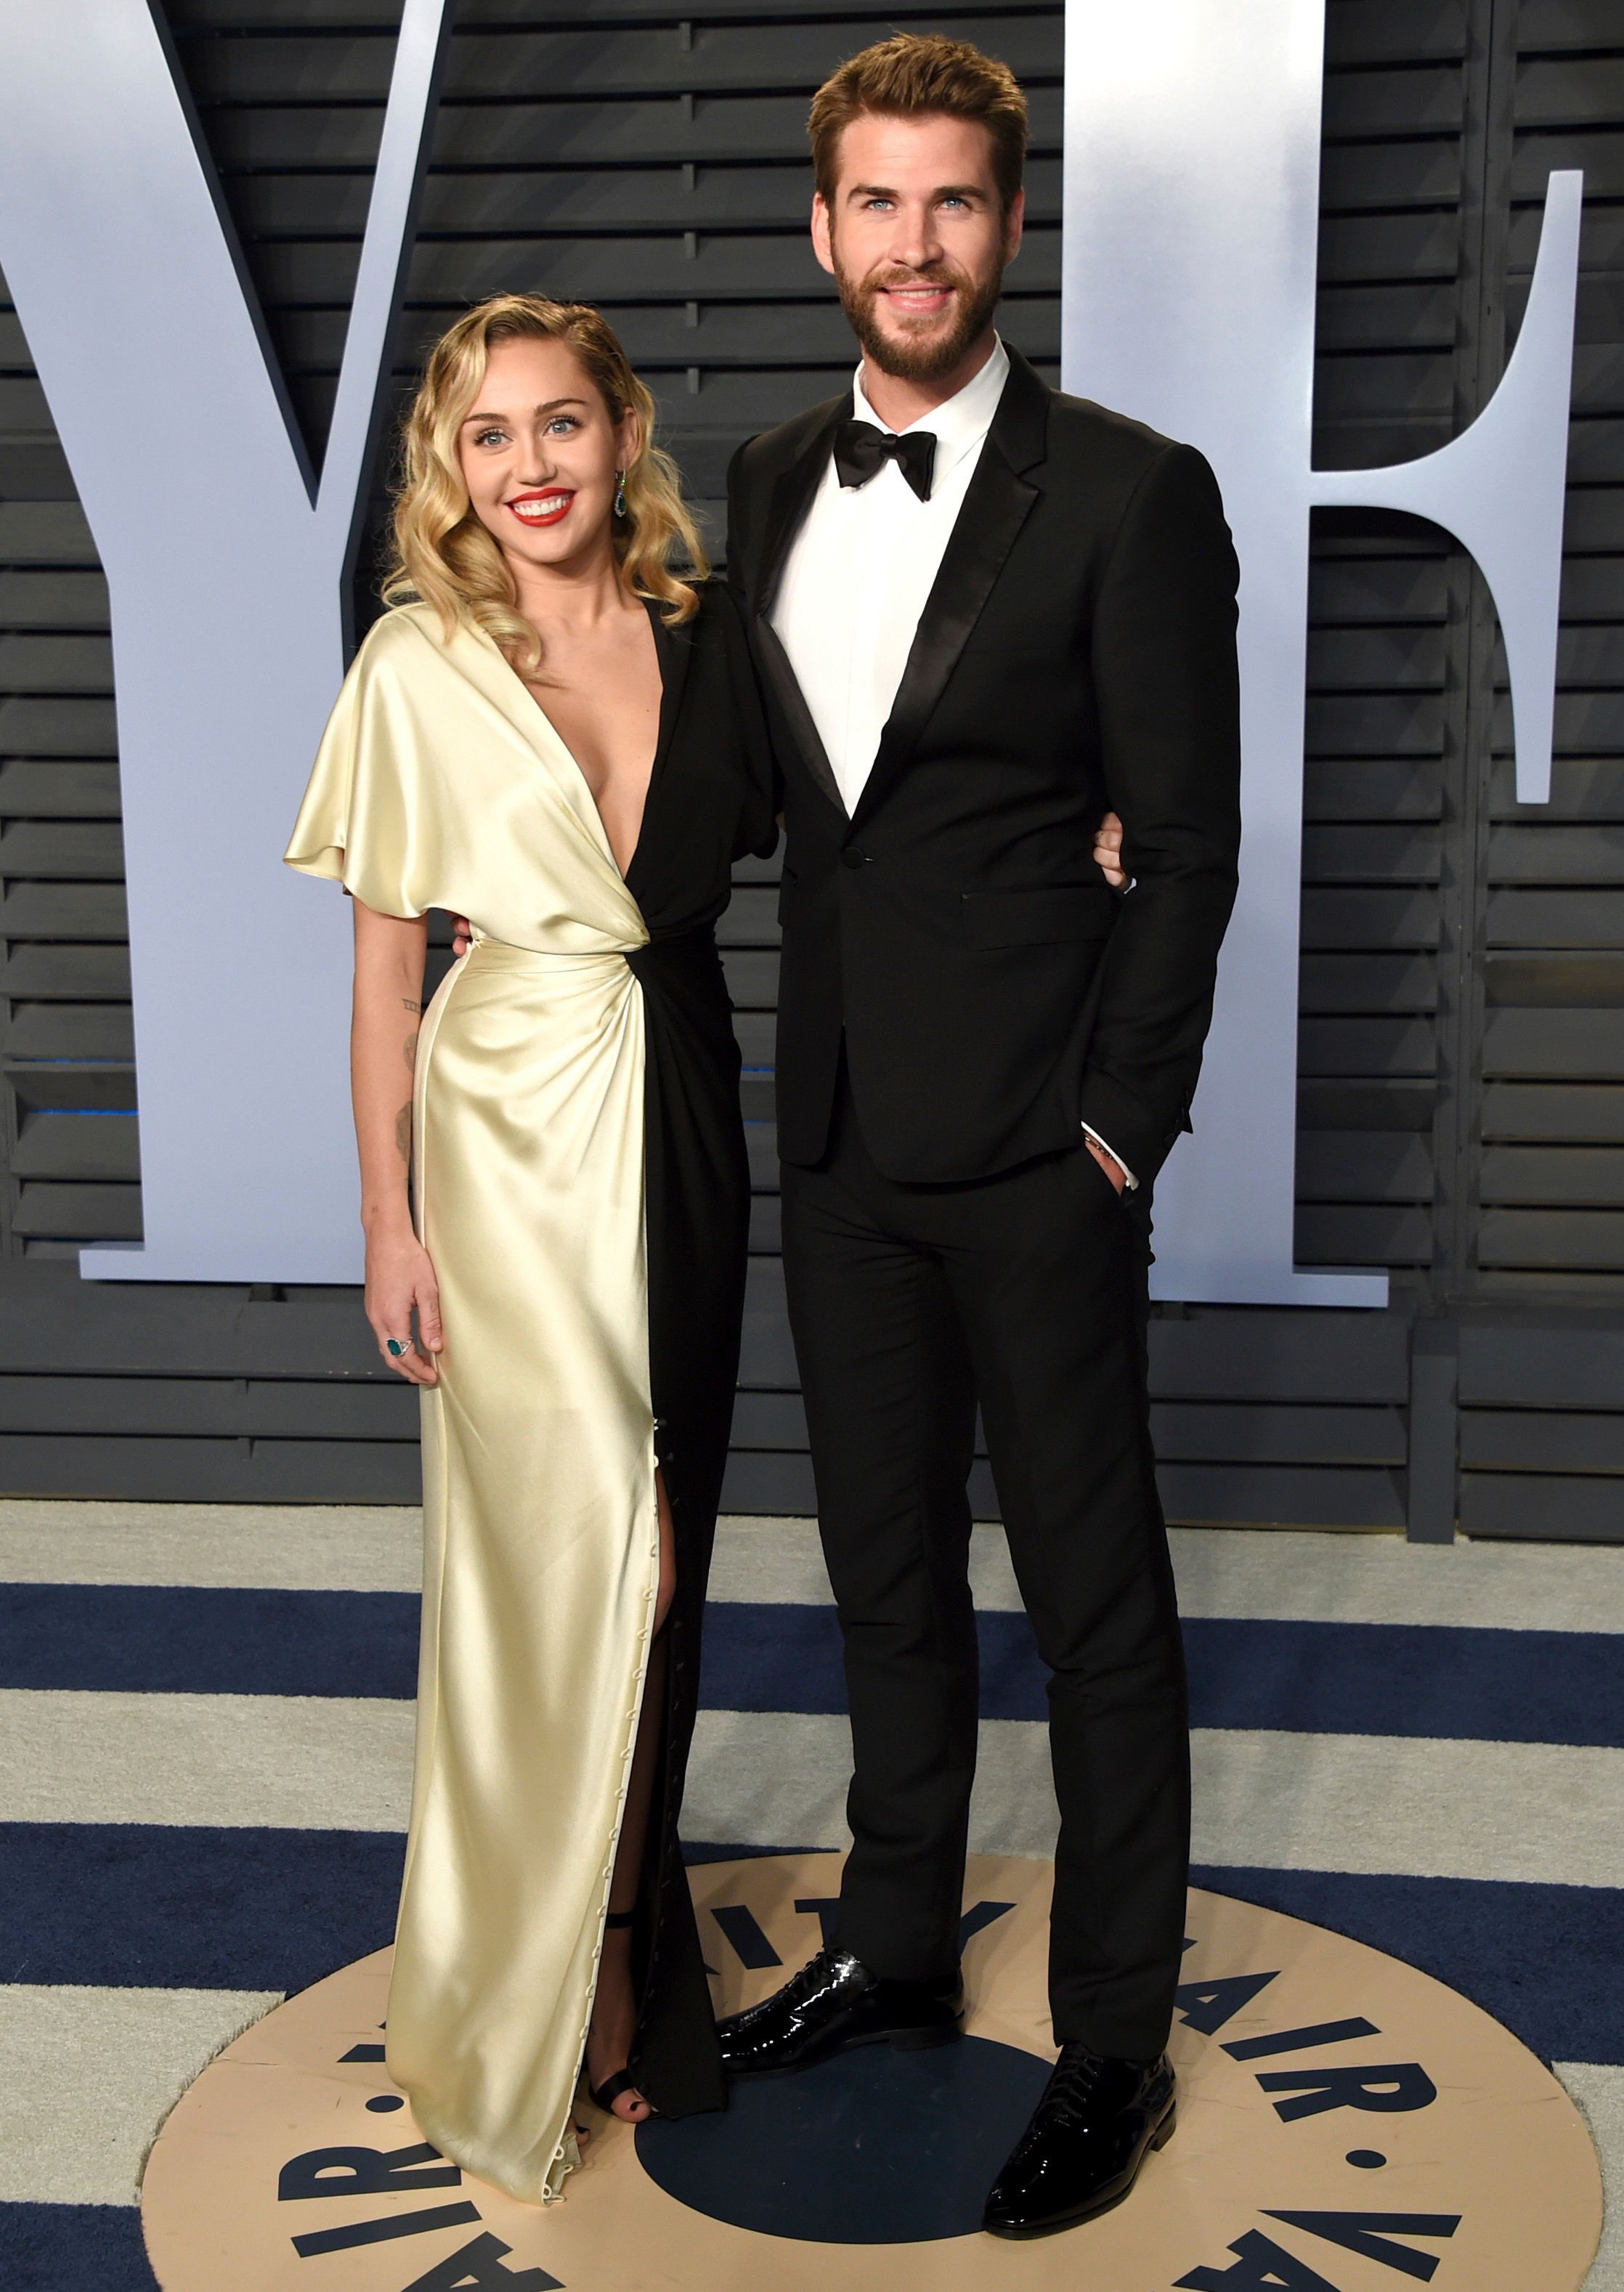 Miley Cyrus And Liam Hemsworth May Have Just Got